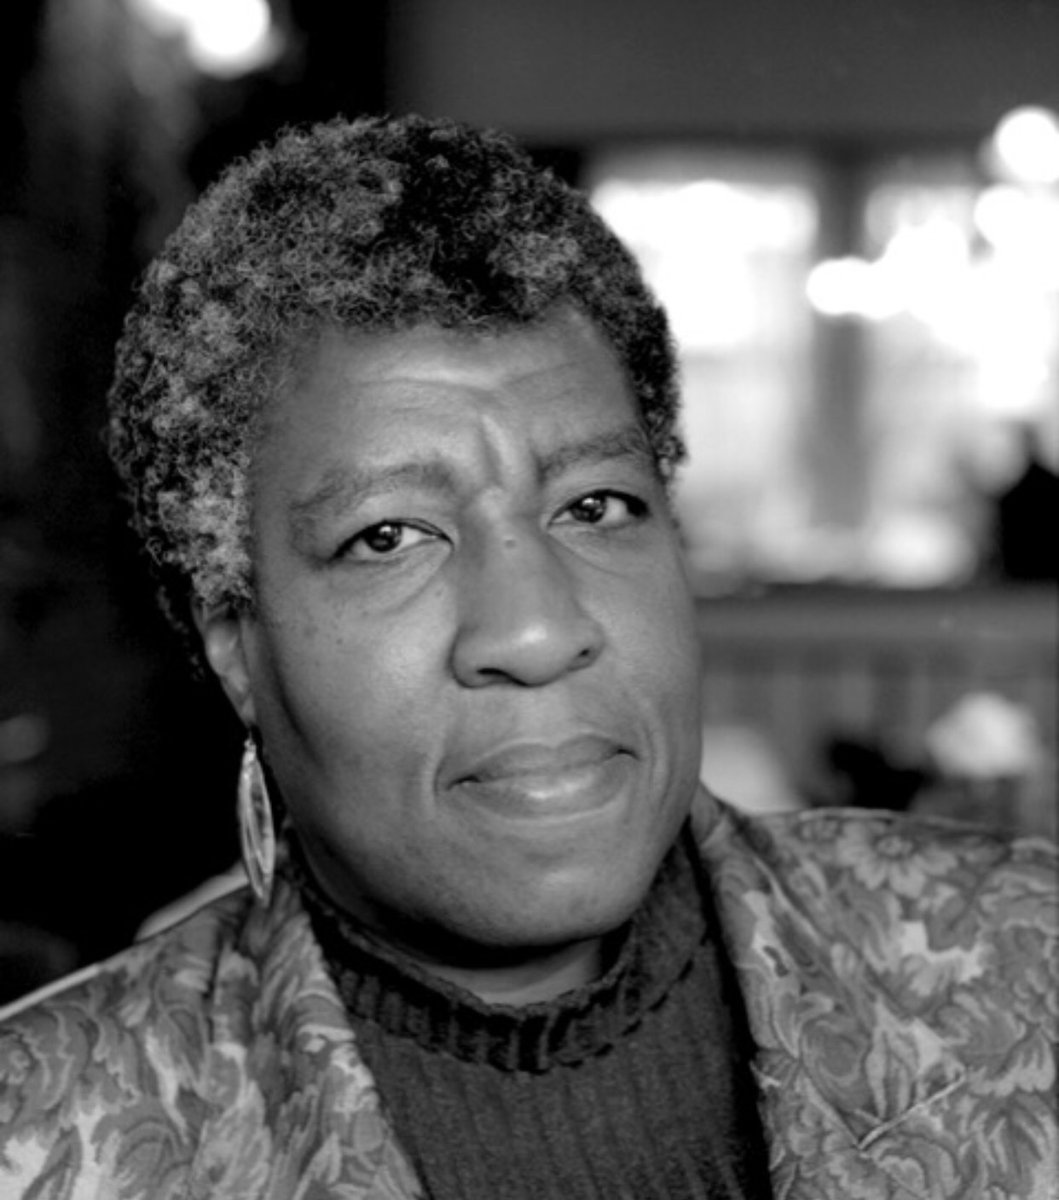 """The spot where @NASAPersevere began its journey on Mars now bears the name """"Octavia E. Butler Landing."""" Groundbreaking author @OctaviaEButler is a perfect fit for this mission, as her main characters embody overcoming challenges.  📸: Ching-Ming Cheung https://t.co/itgooPxpCN"""